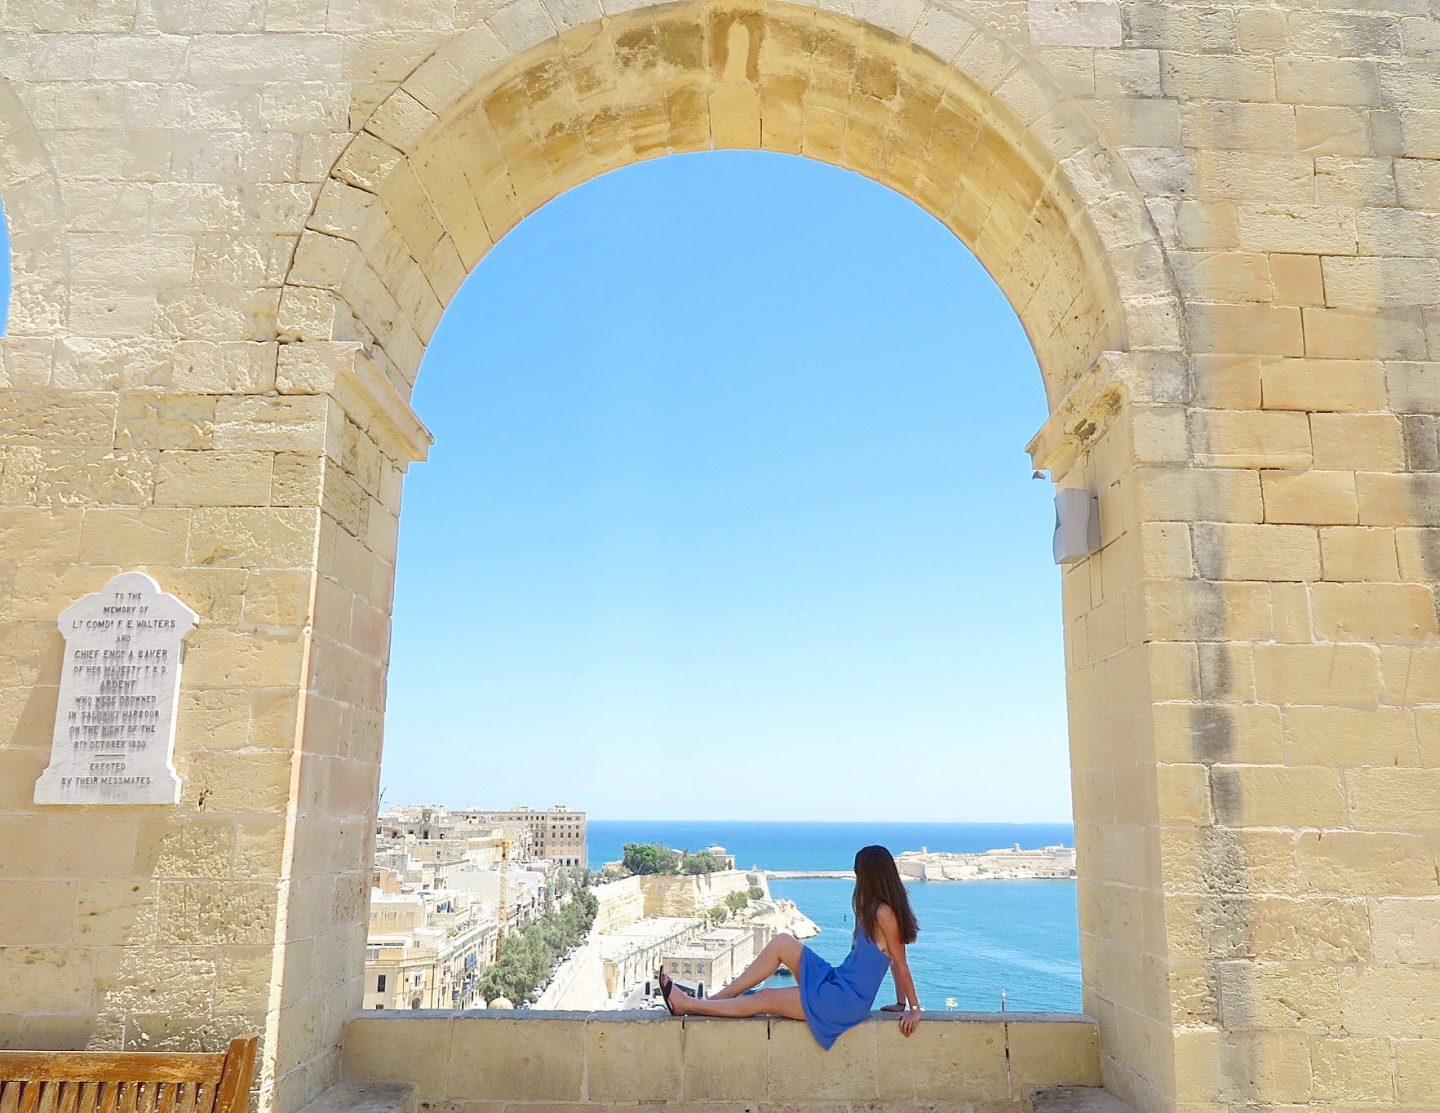 4 DAYS IN MALTA: WHAT TO DO AND WHERE TO STAY